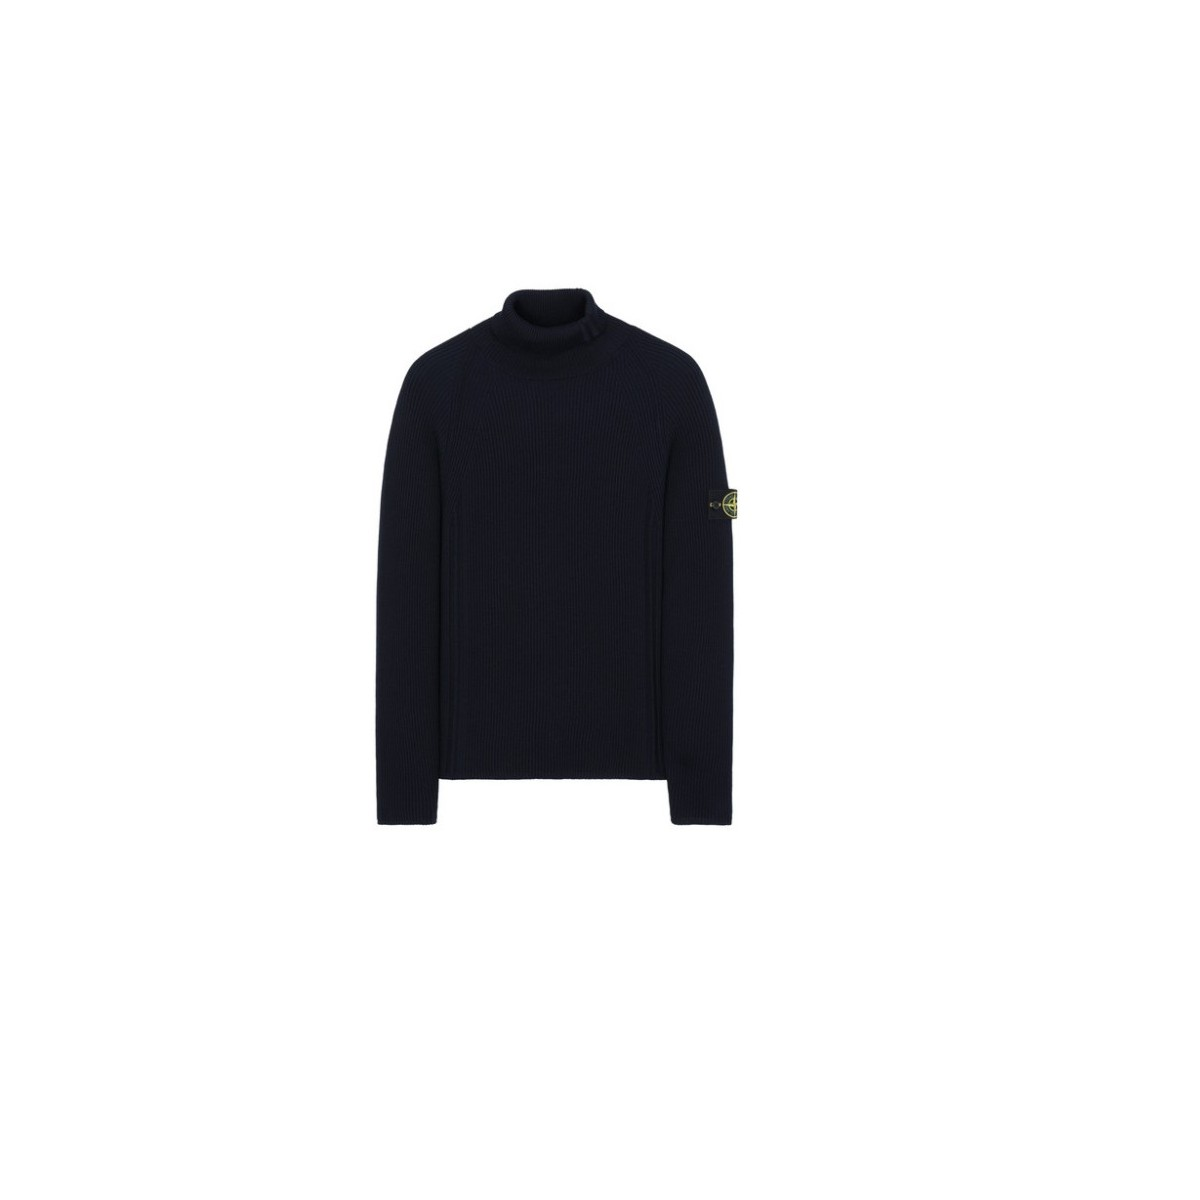 Rollneck Knit - 542C2 full ribbed light wool